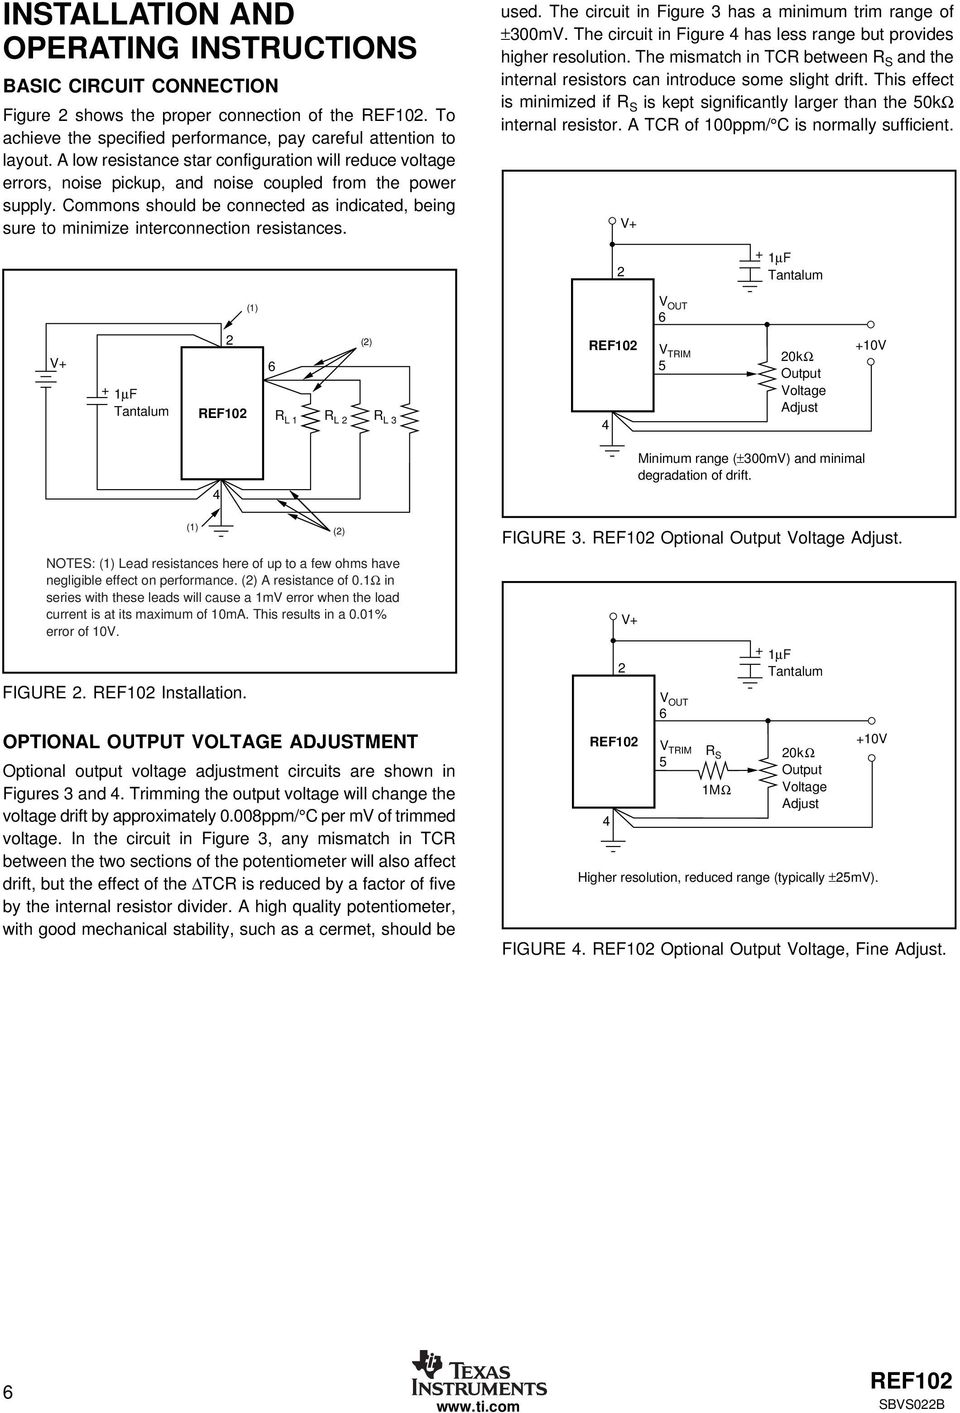 10v Precision Voltage Reference Pdf Gain 2 Of Amplifier Circuit Ina105 Amplifiercircuit Commons Should Be Connected As Indicated Being Sure To Minimize Interconnection Resistances Used